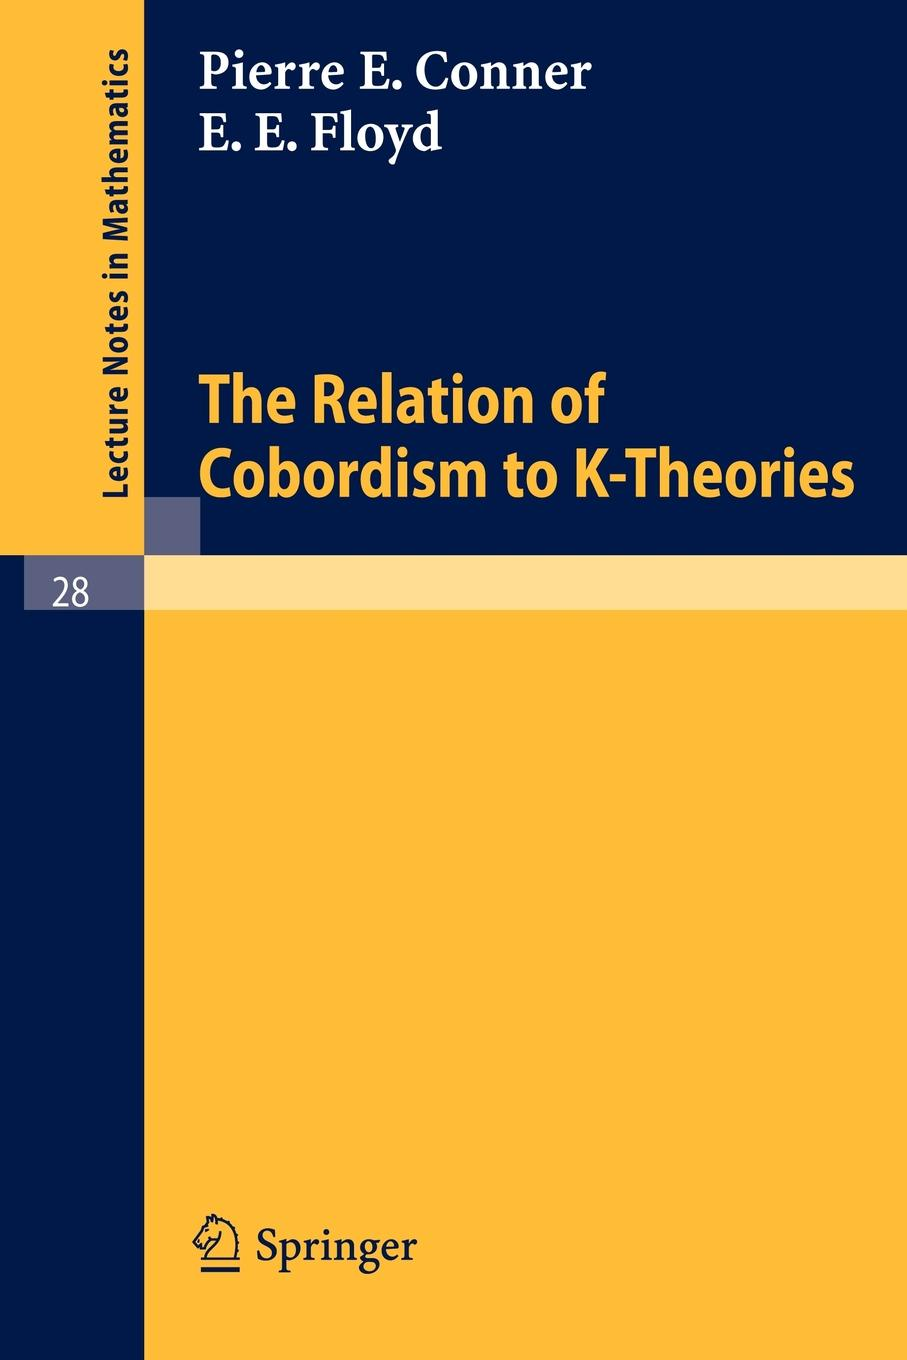 P. E. Conner, Floyd The Relation of Cobordism to K-Theories